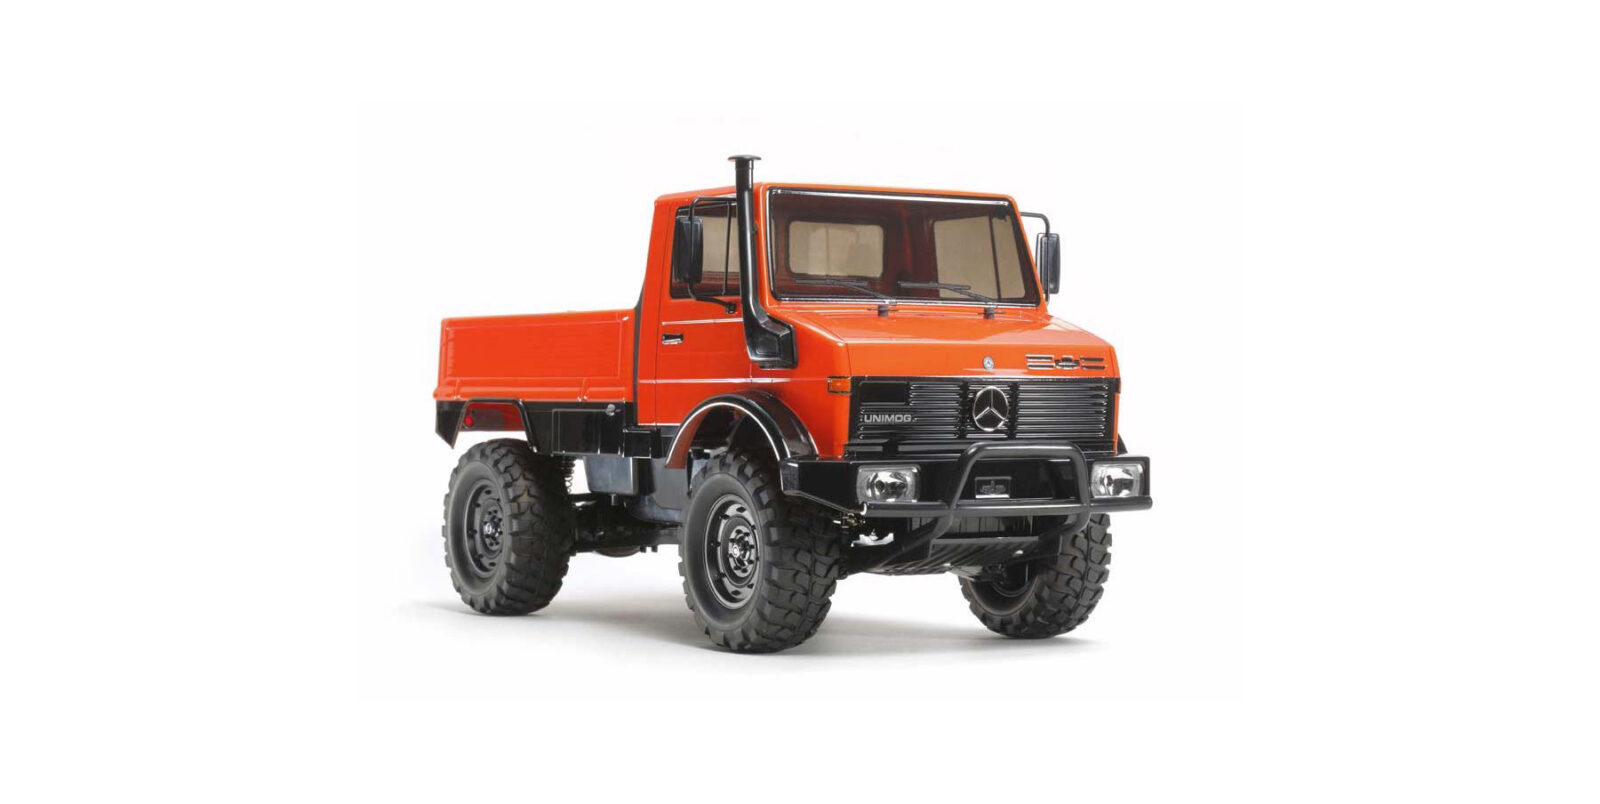 Mercedes-Benz Unimog 425 4x4 Tamiya RC Model